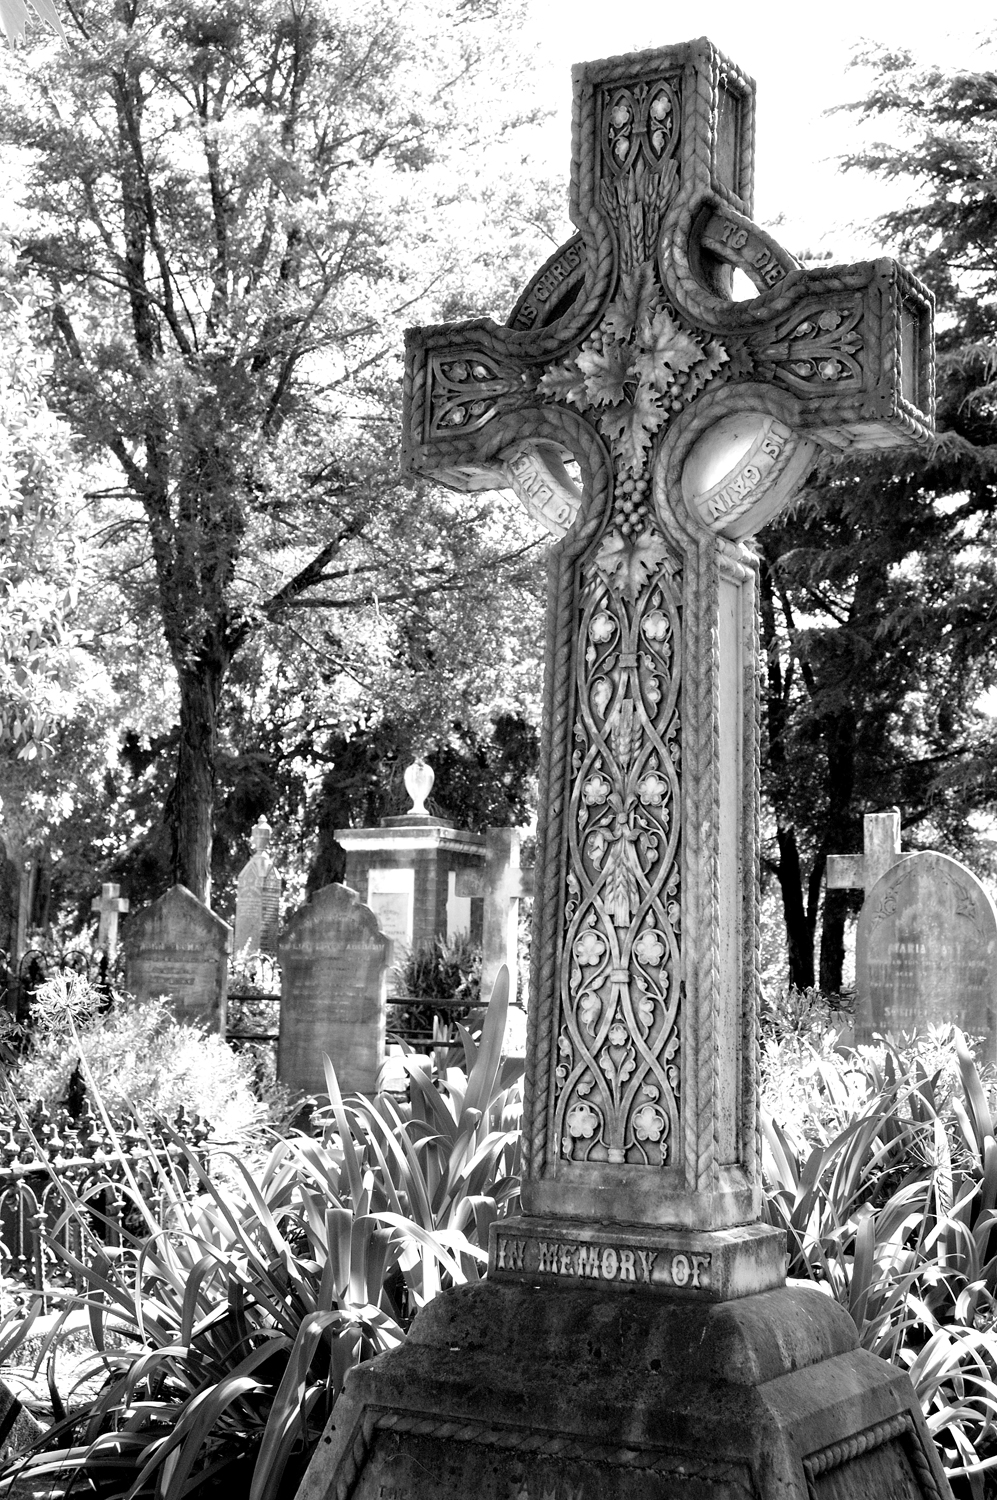 untitled #104 [napier cemetery, napier, hawke's bay, new zealand, 2005]